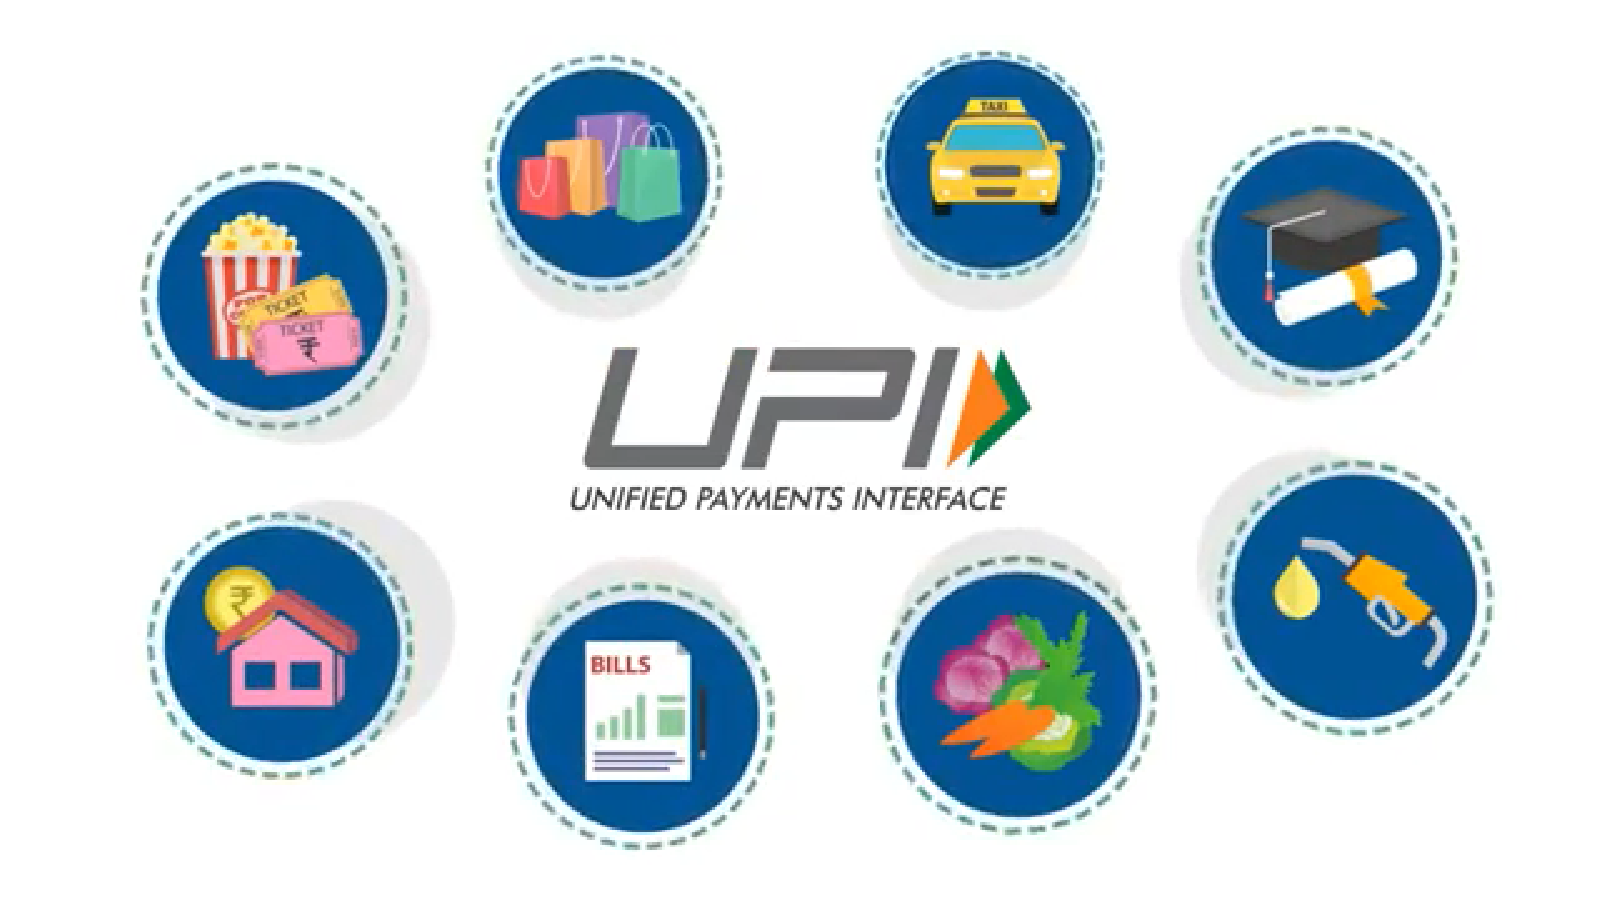 UPI - Unified Payments Interface | One stop portal for all transactions